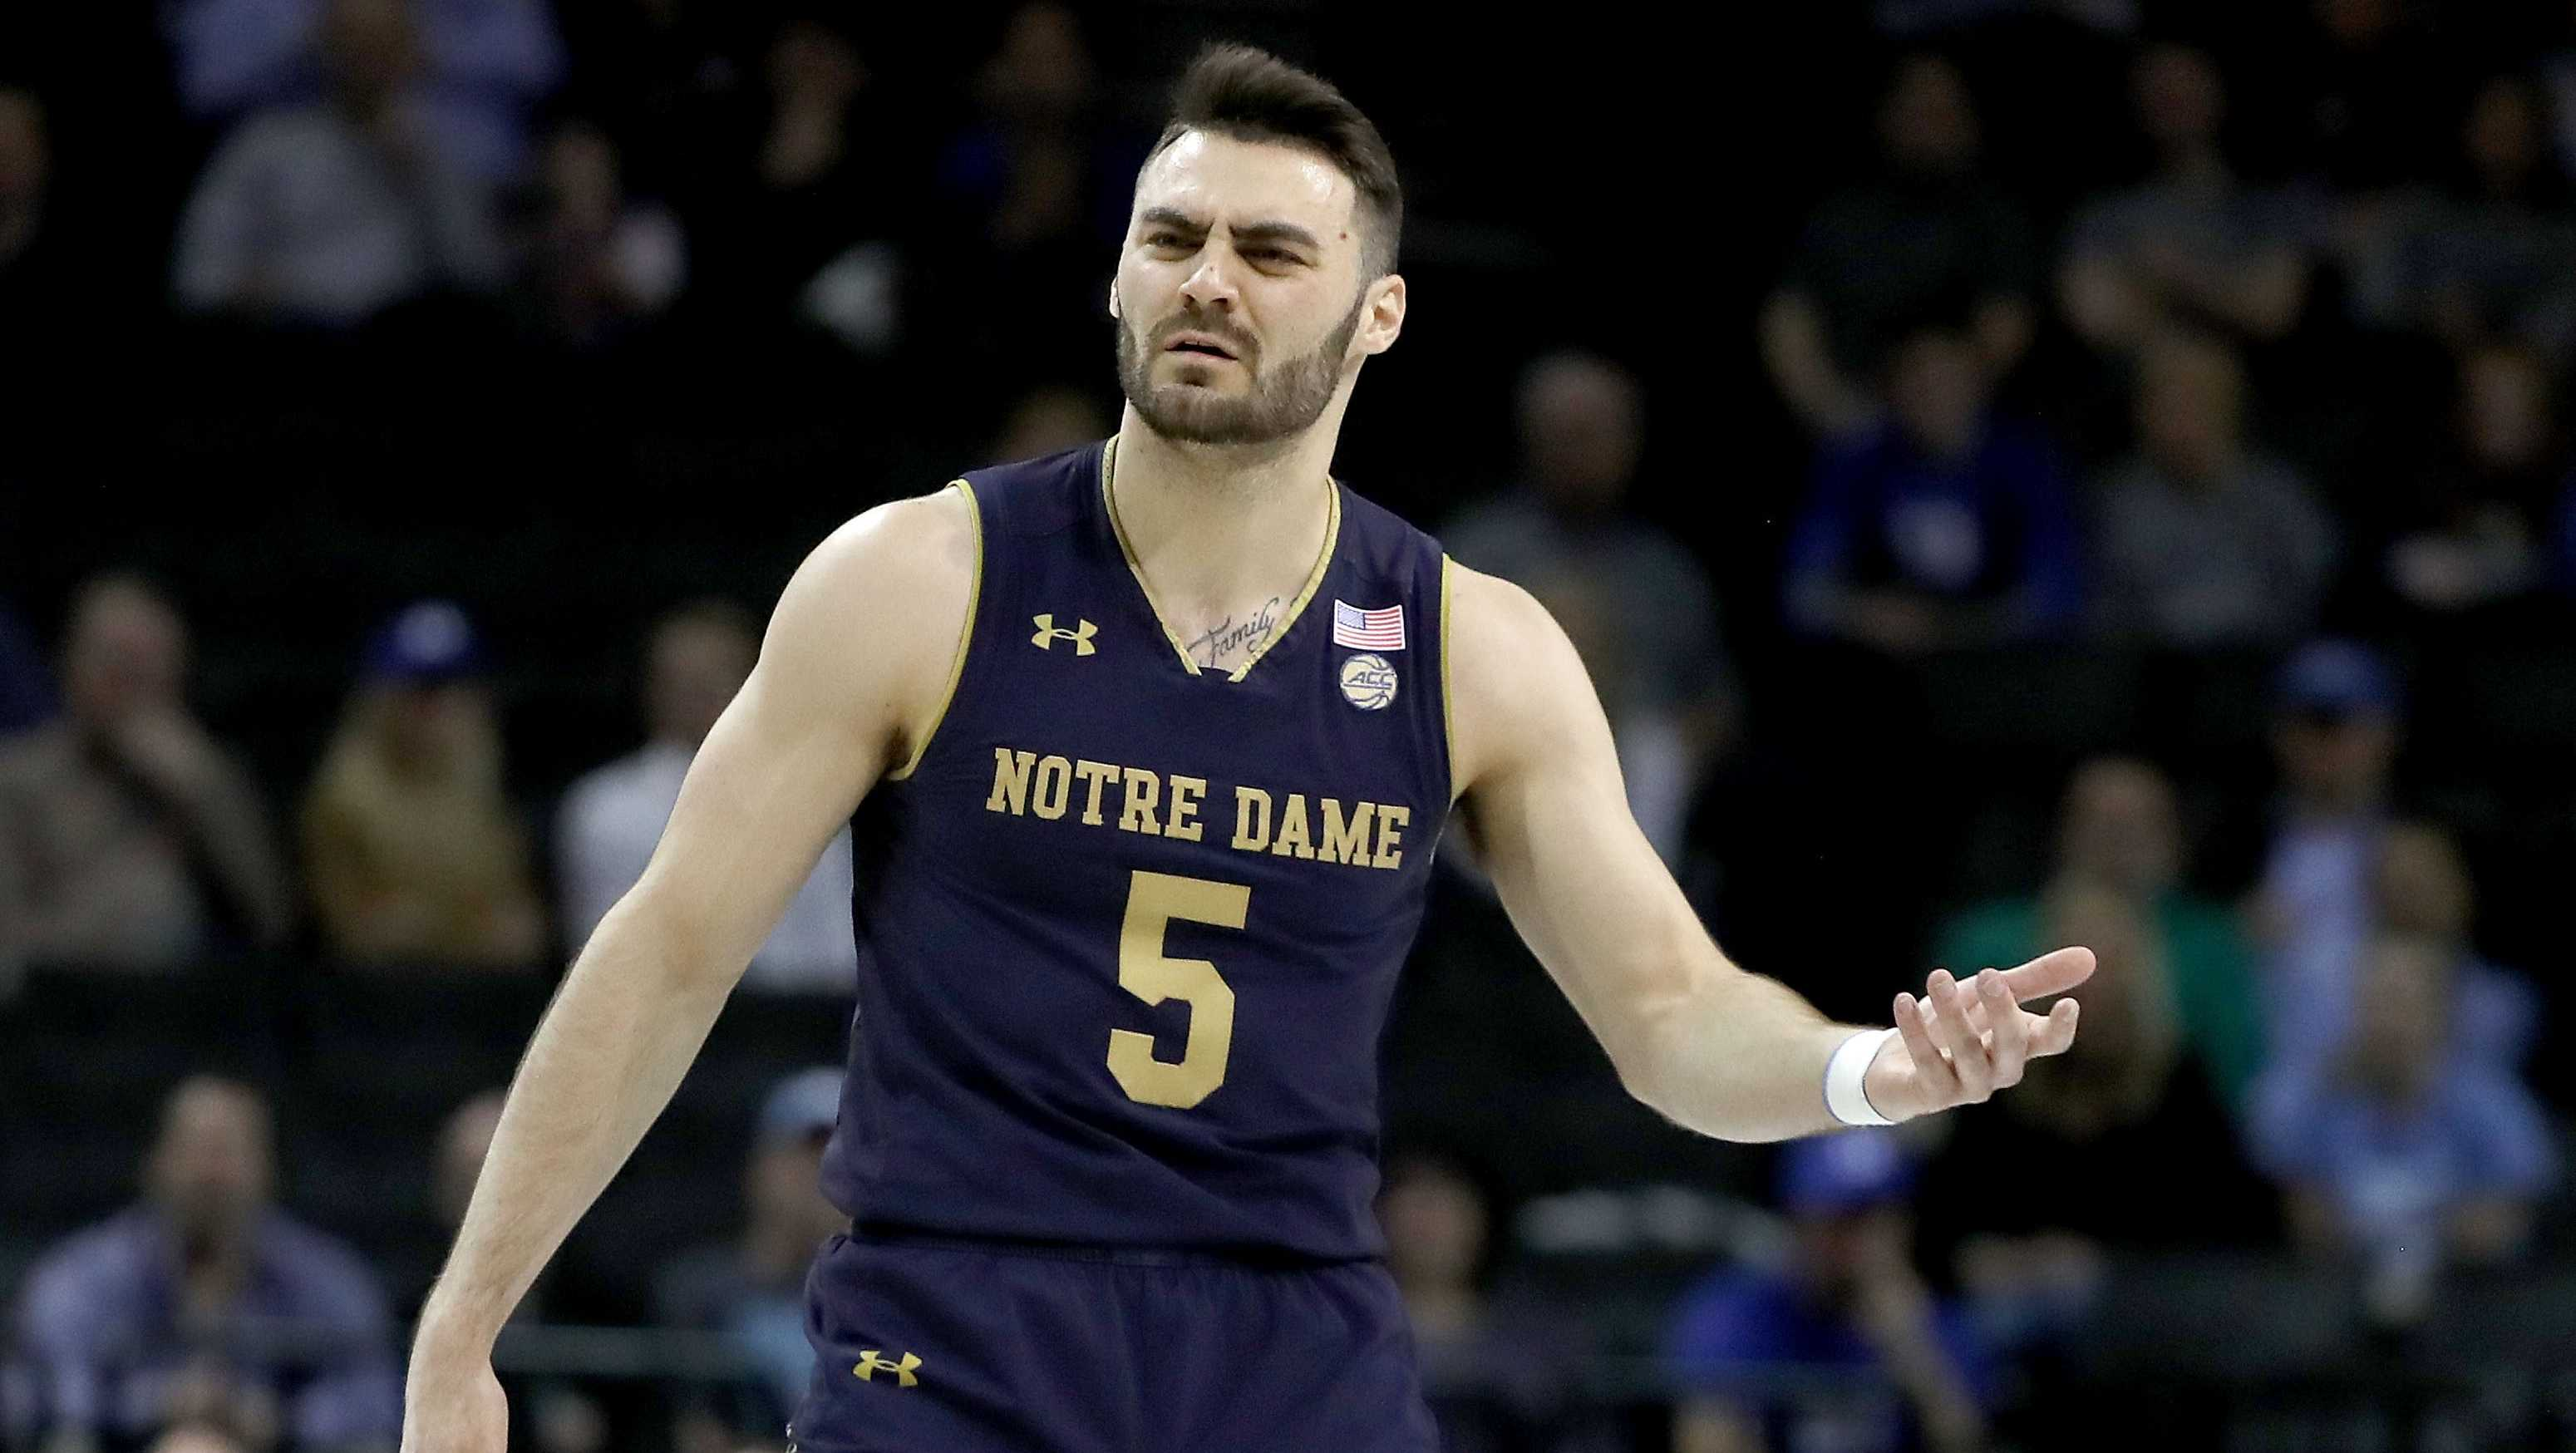 Matt Farrell #5 of the Notre Dame Fighting Irish reacts in the first half against the Duke Blue Devils during the quarterfinals of the ACC Men's Basketball Tournament at Barclays Center on March 8, 2018 in the Brooklyn borough of New York City.